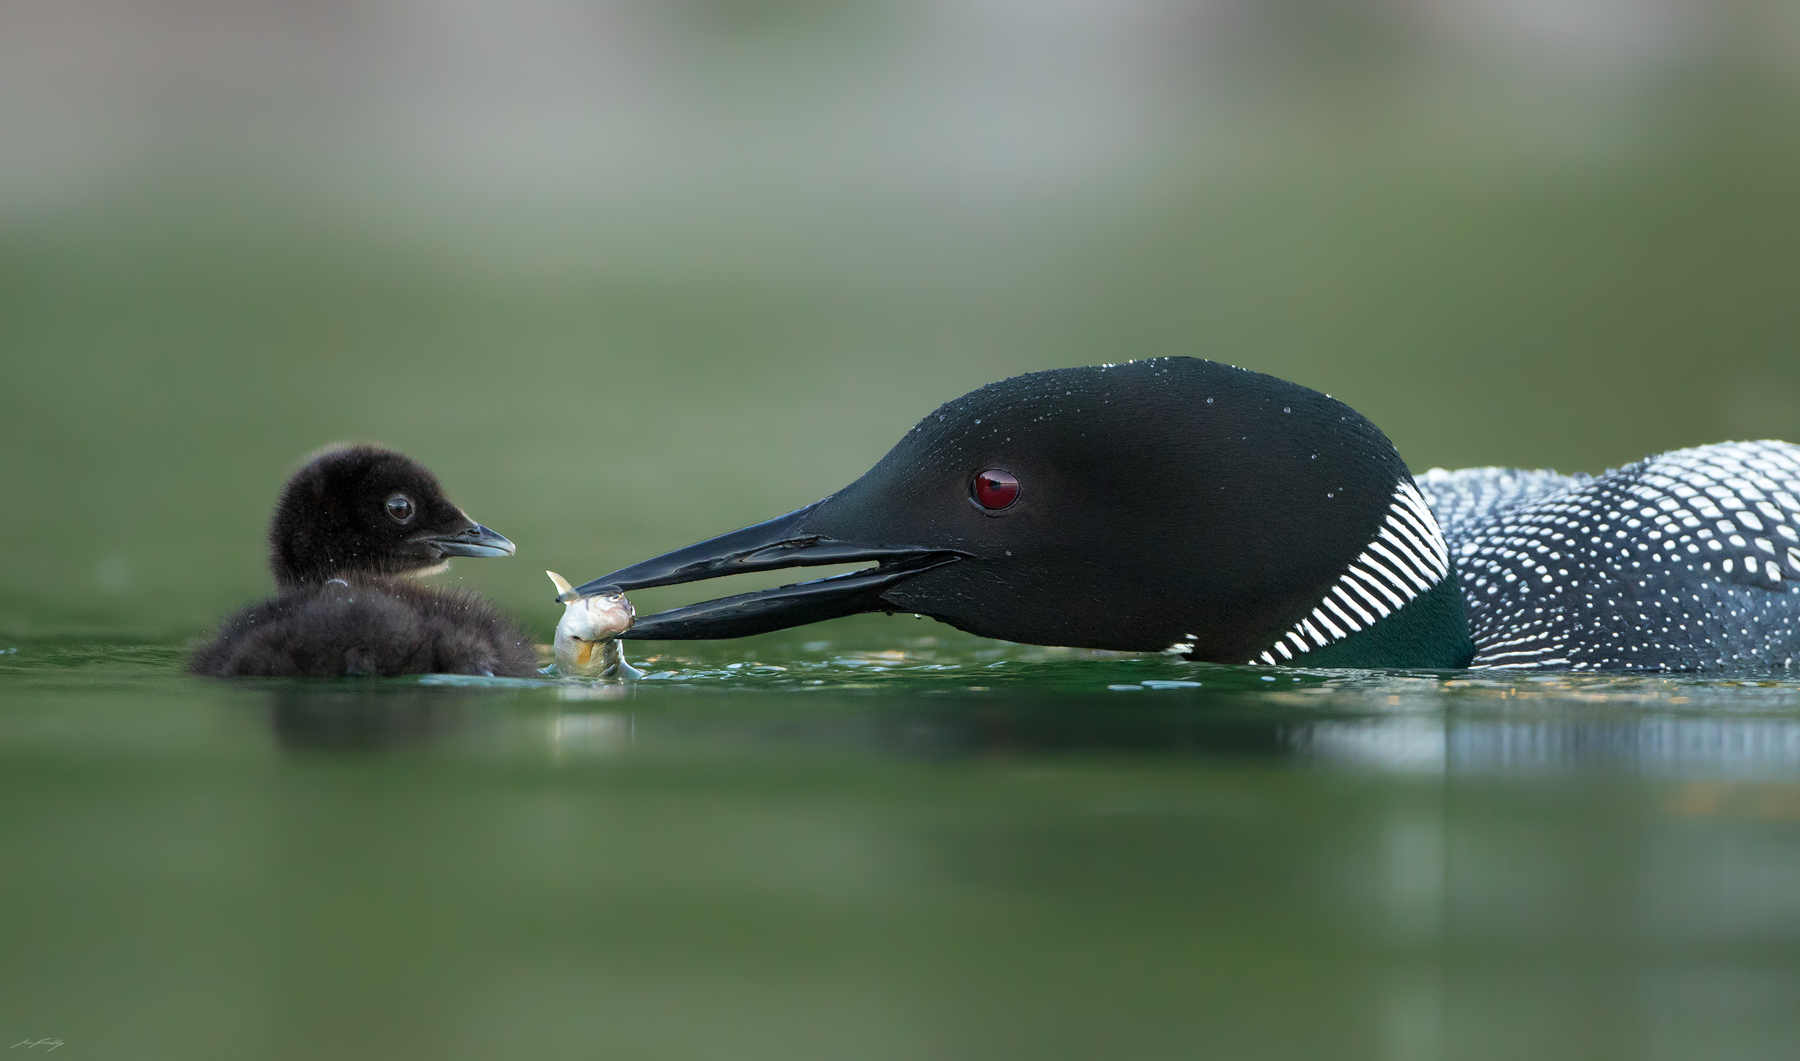 A Common Loon feeds its chick a Rainbow Trout fry on a lake in the Cariboo Region of British Columbia.